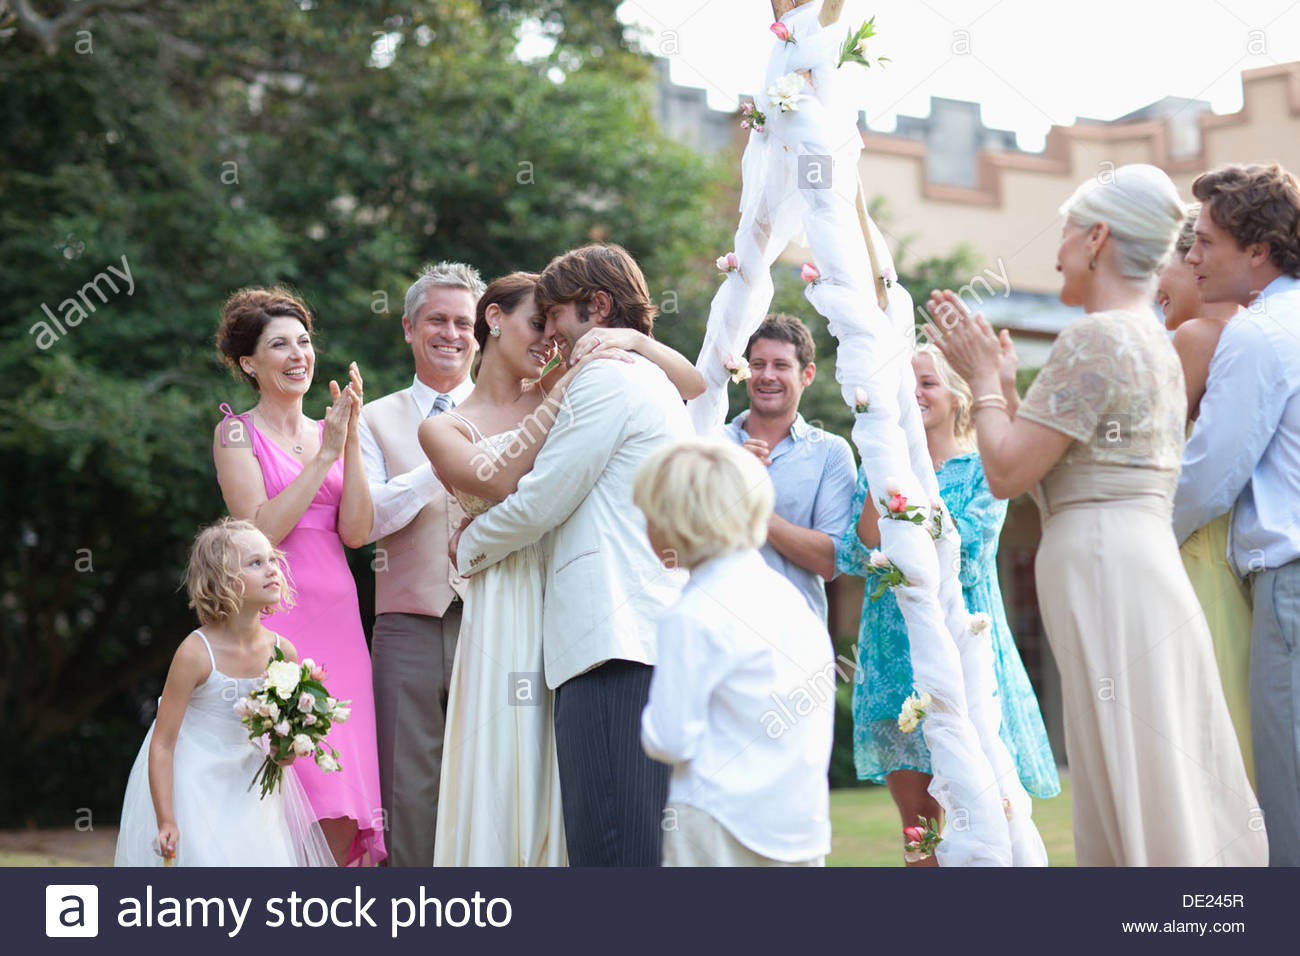 Guests watching bride and groom - Stock Image